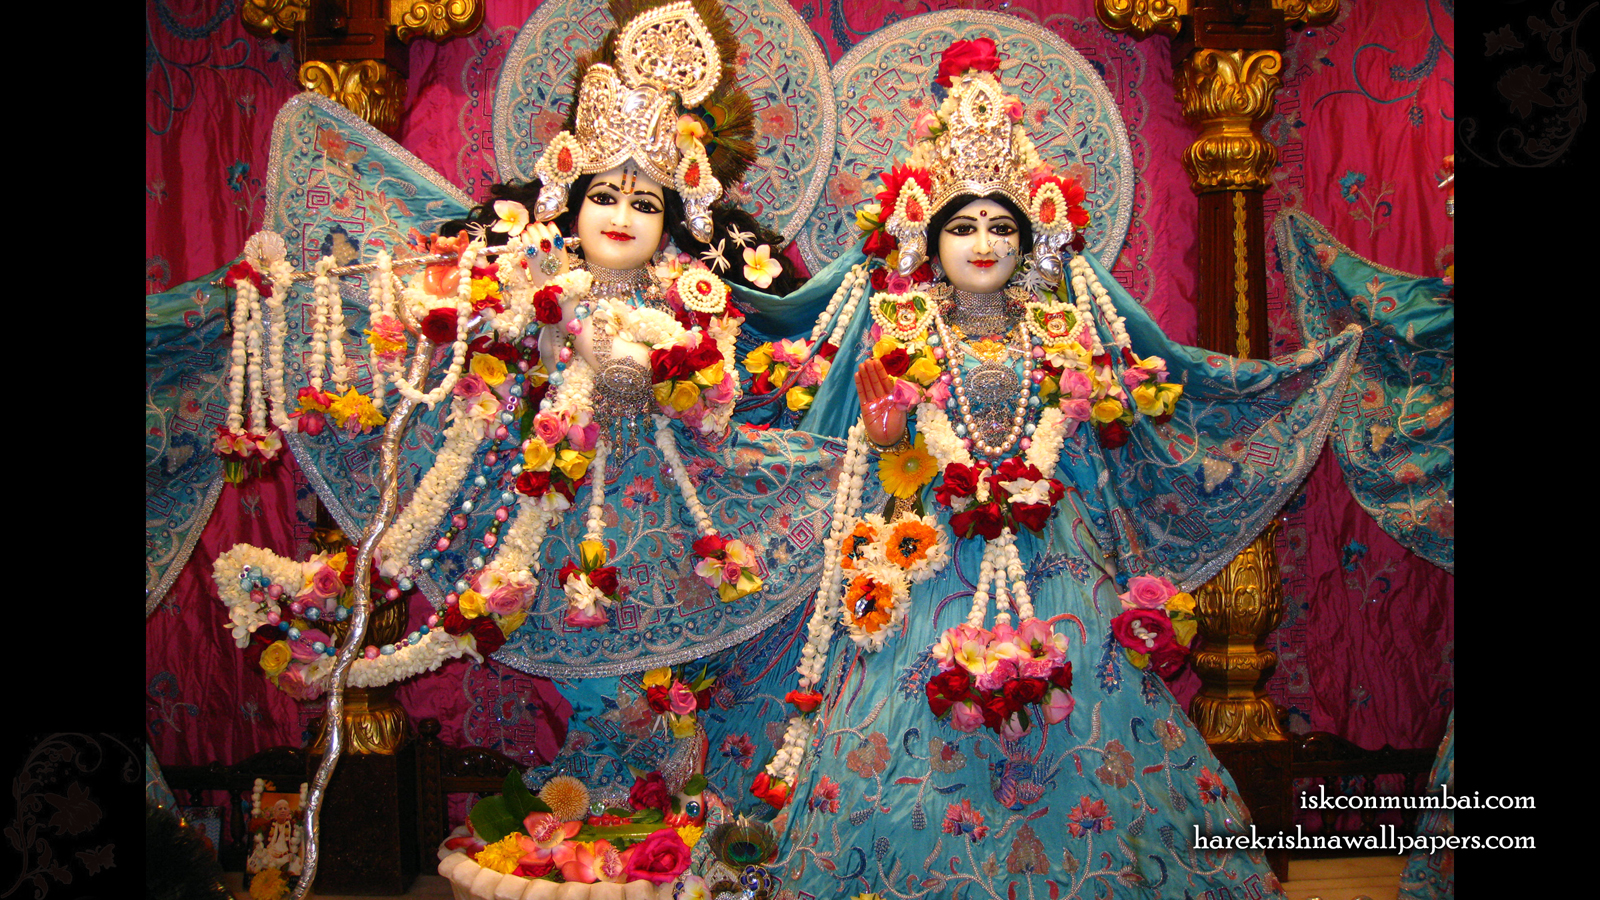 Sri Sri Radha Rasabihari Wallpaper (004) Size 1600x900 Download